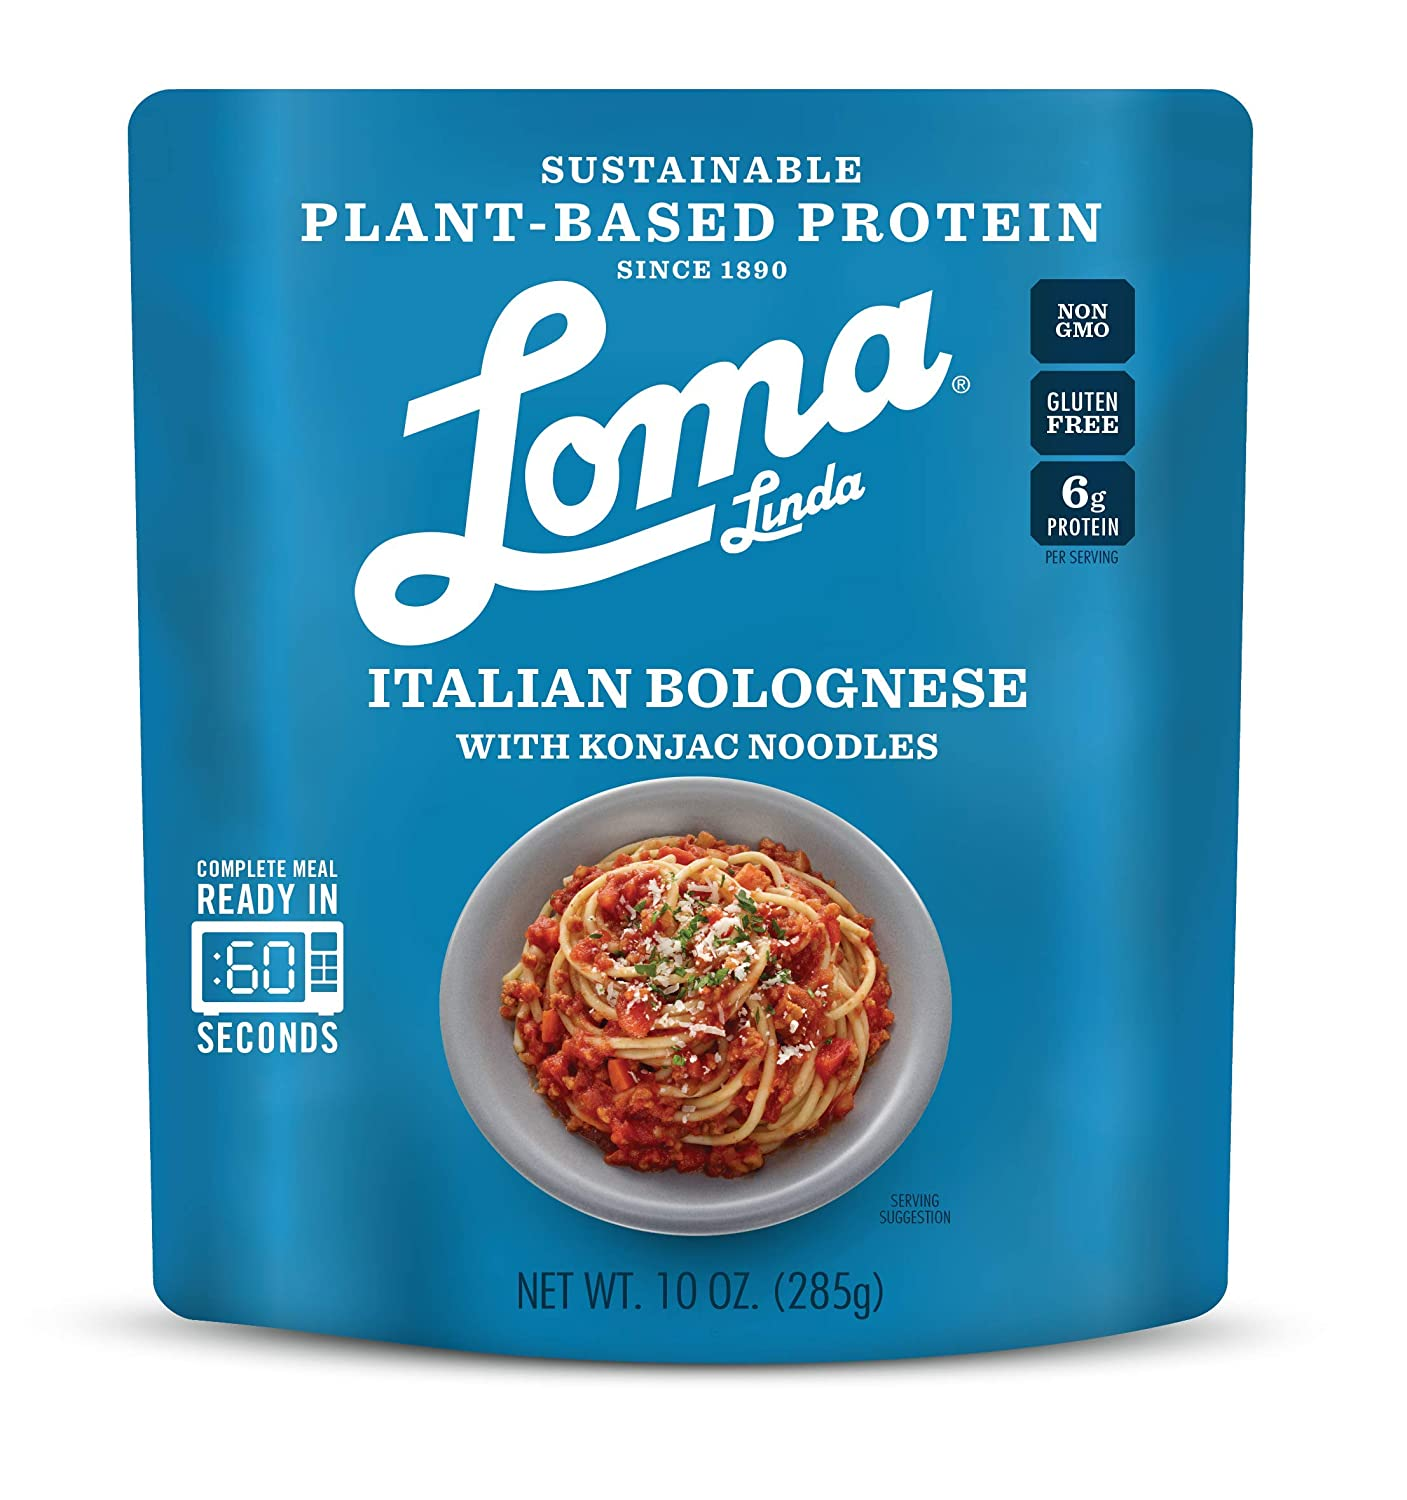 B07M99HRJH Loma Linda Blue - Plant-Based Complete Meal Solution - Heat & Eat Italian Bolognese with Konjac Noodles (10 oz.) (Pack of 3) - Non-GMO 81ygZYufiXL